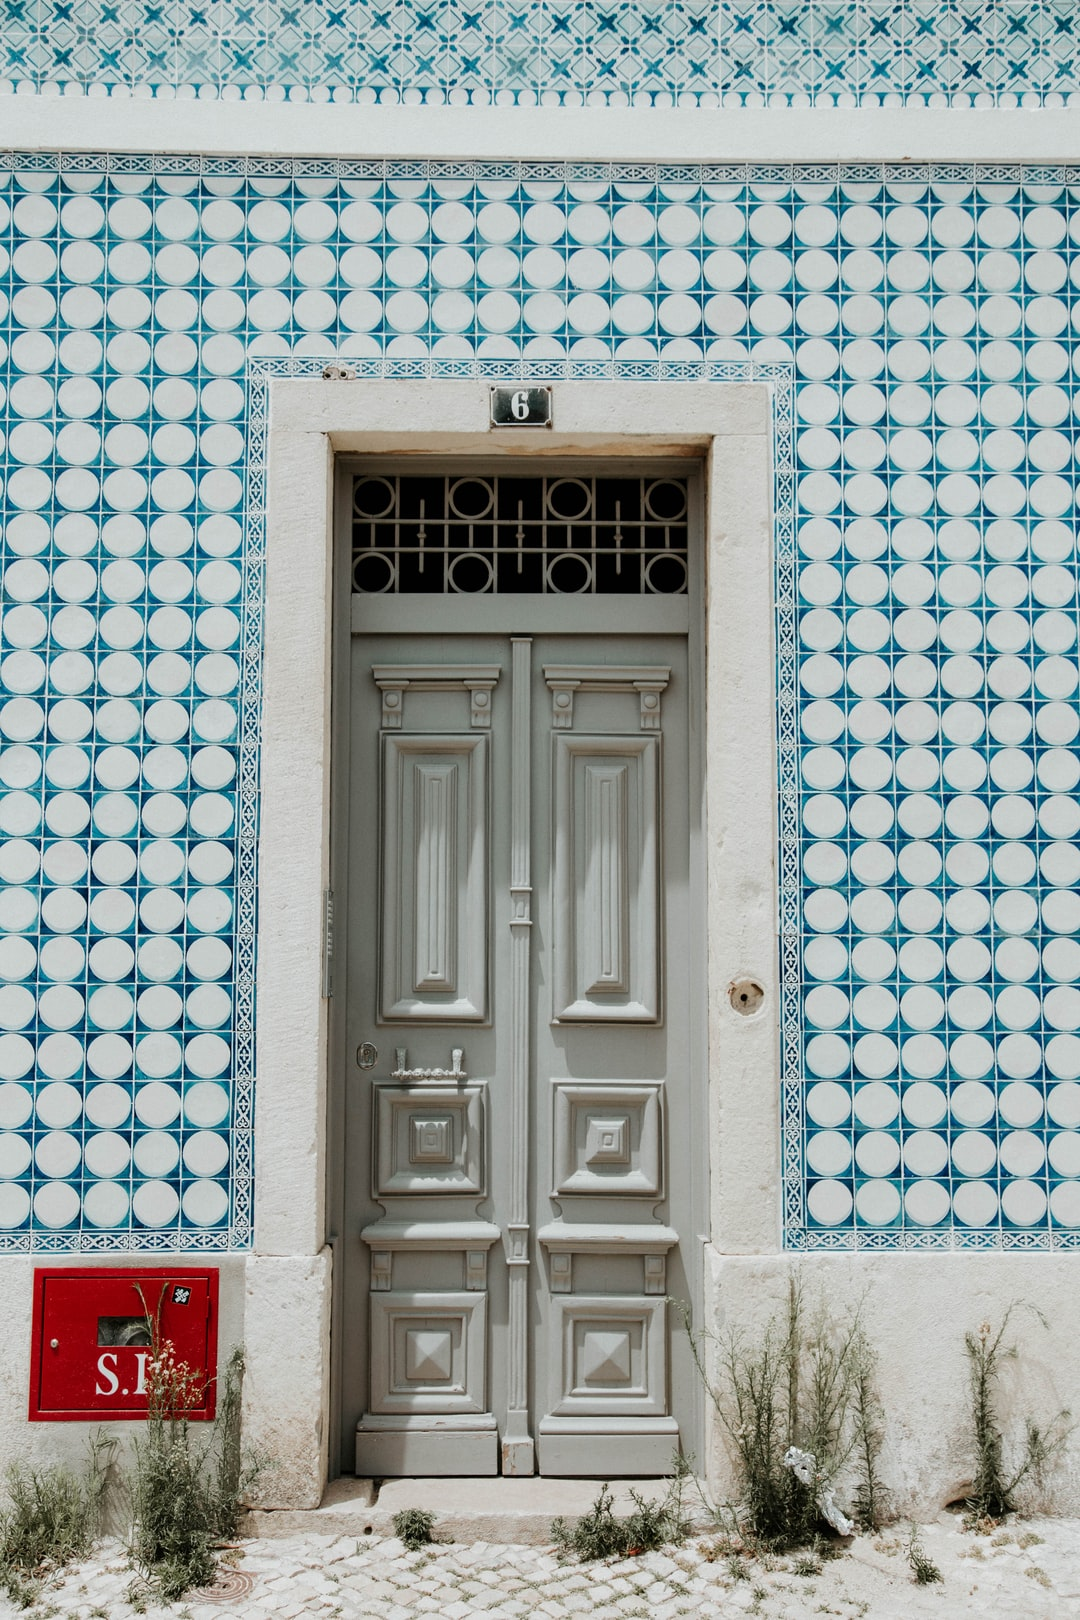 i was venturing through Alfama, a breathtaking neighborhood in Lisbon, Portugal. I couldn't help but be inspired by the beautiful tile lined streets and homes.